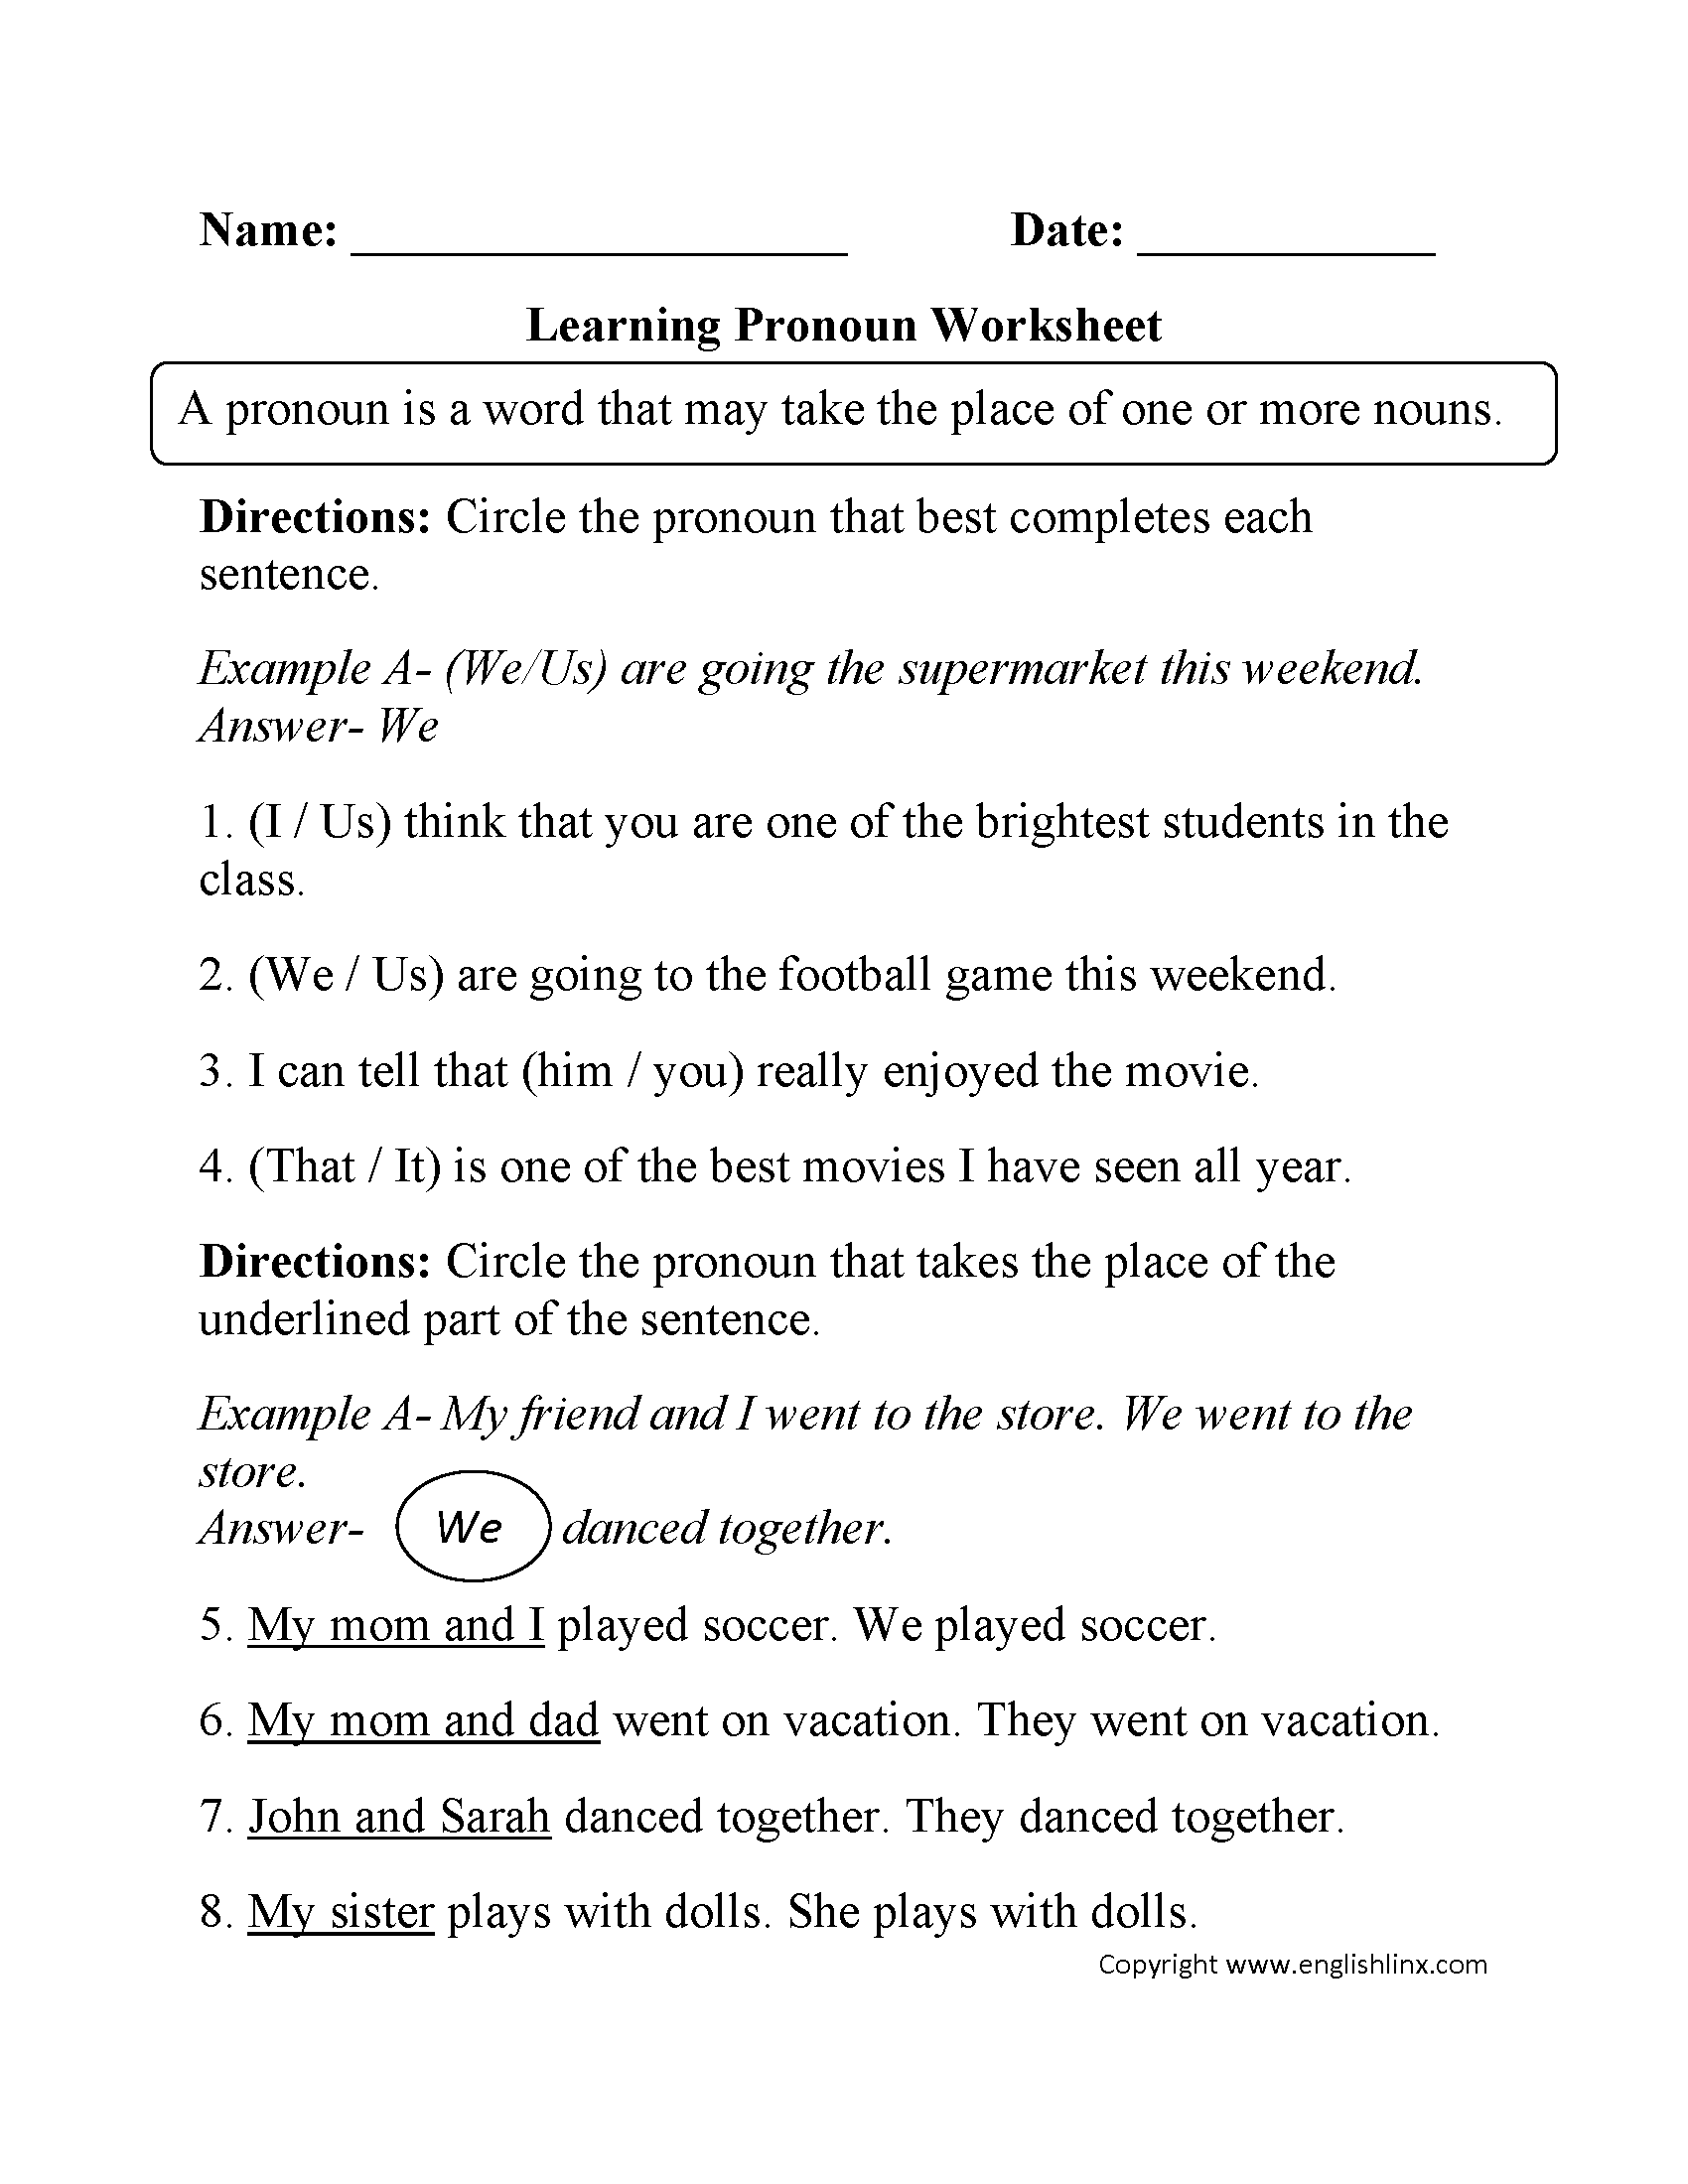 Demonstrative Pronouns Worksheet For Grade 4 With Answers